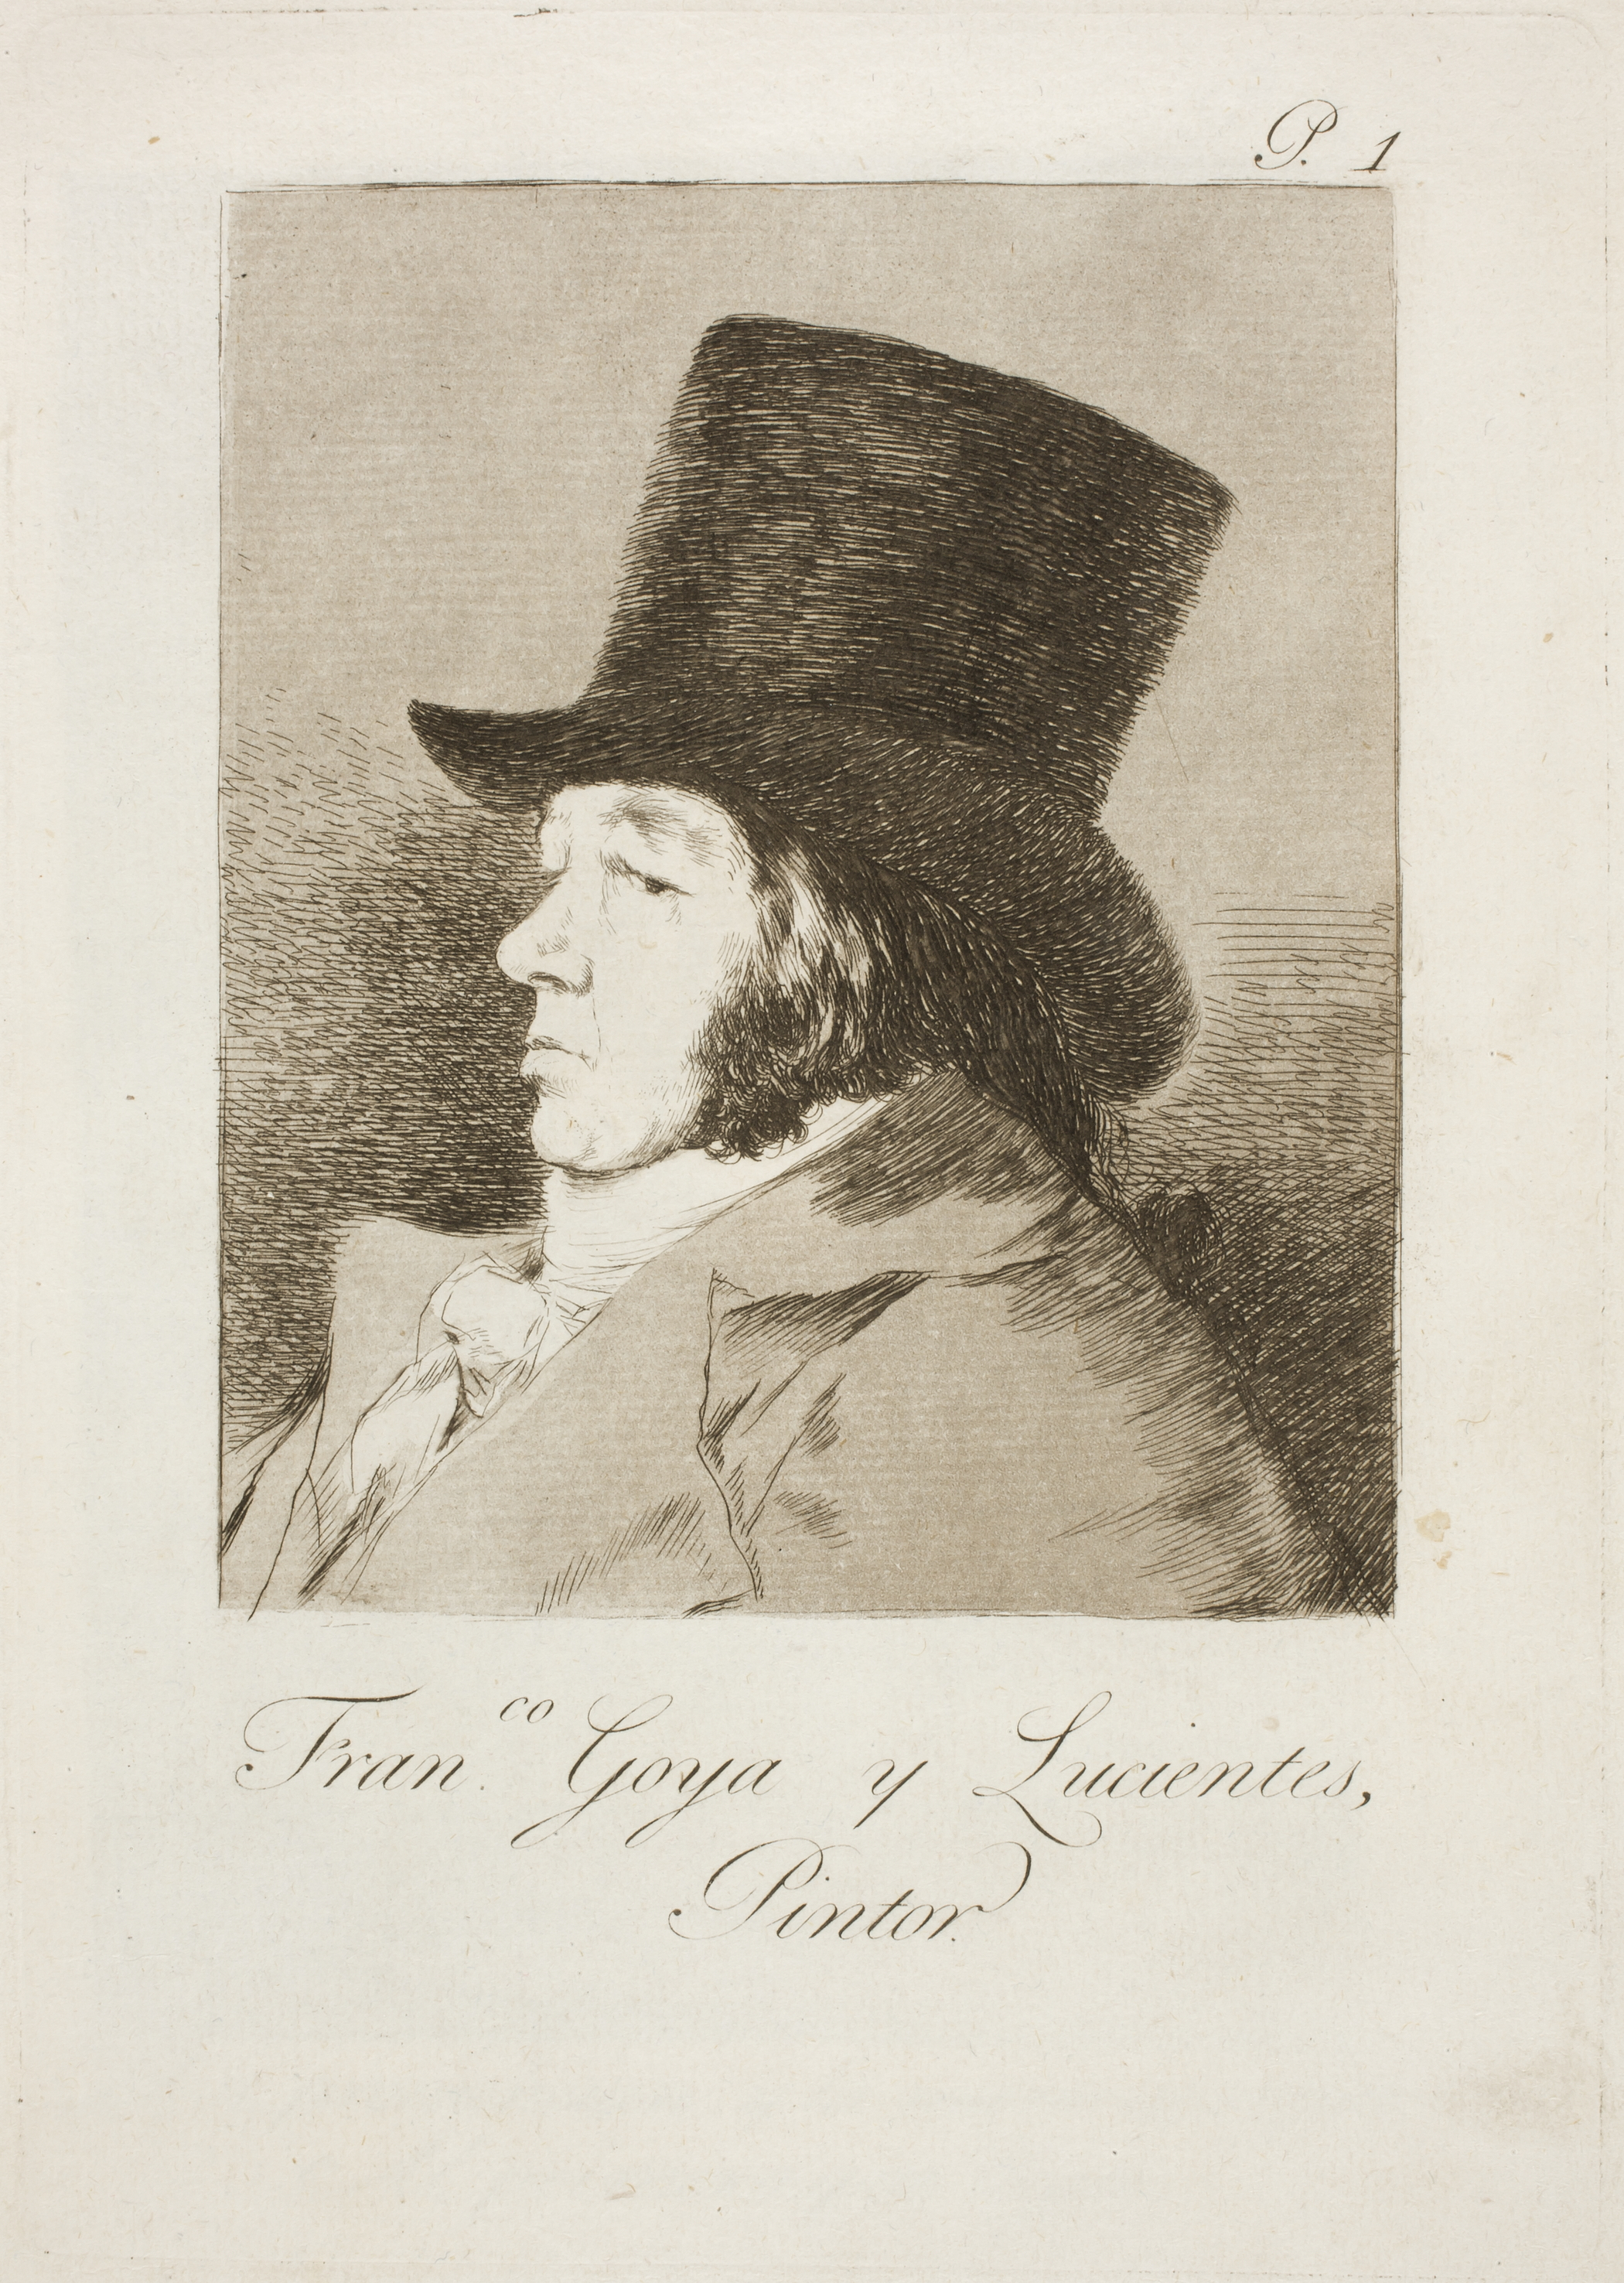 I'm writing an essay on Fransico Goya and how his life influenced his art?